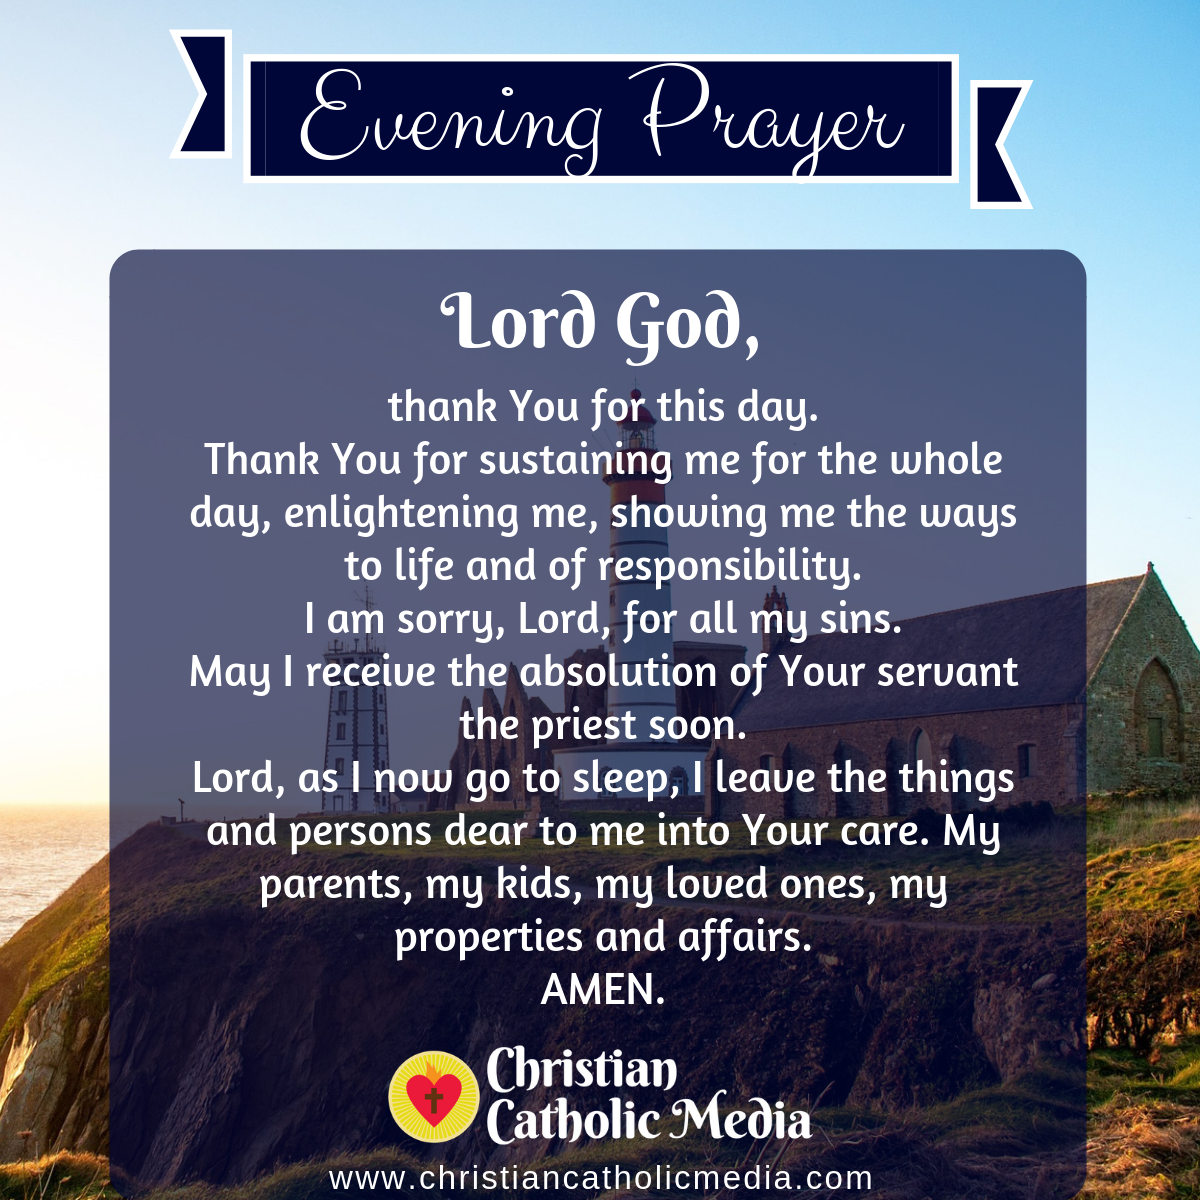 Evening Prayer Catholic Friday 4-24-2020